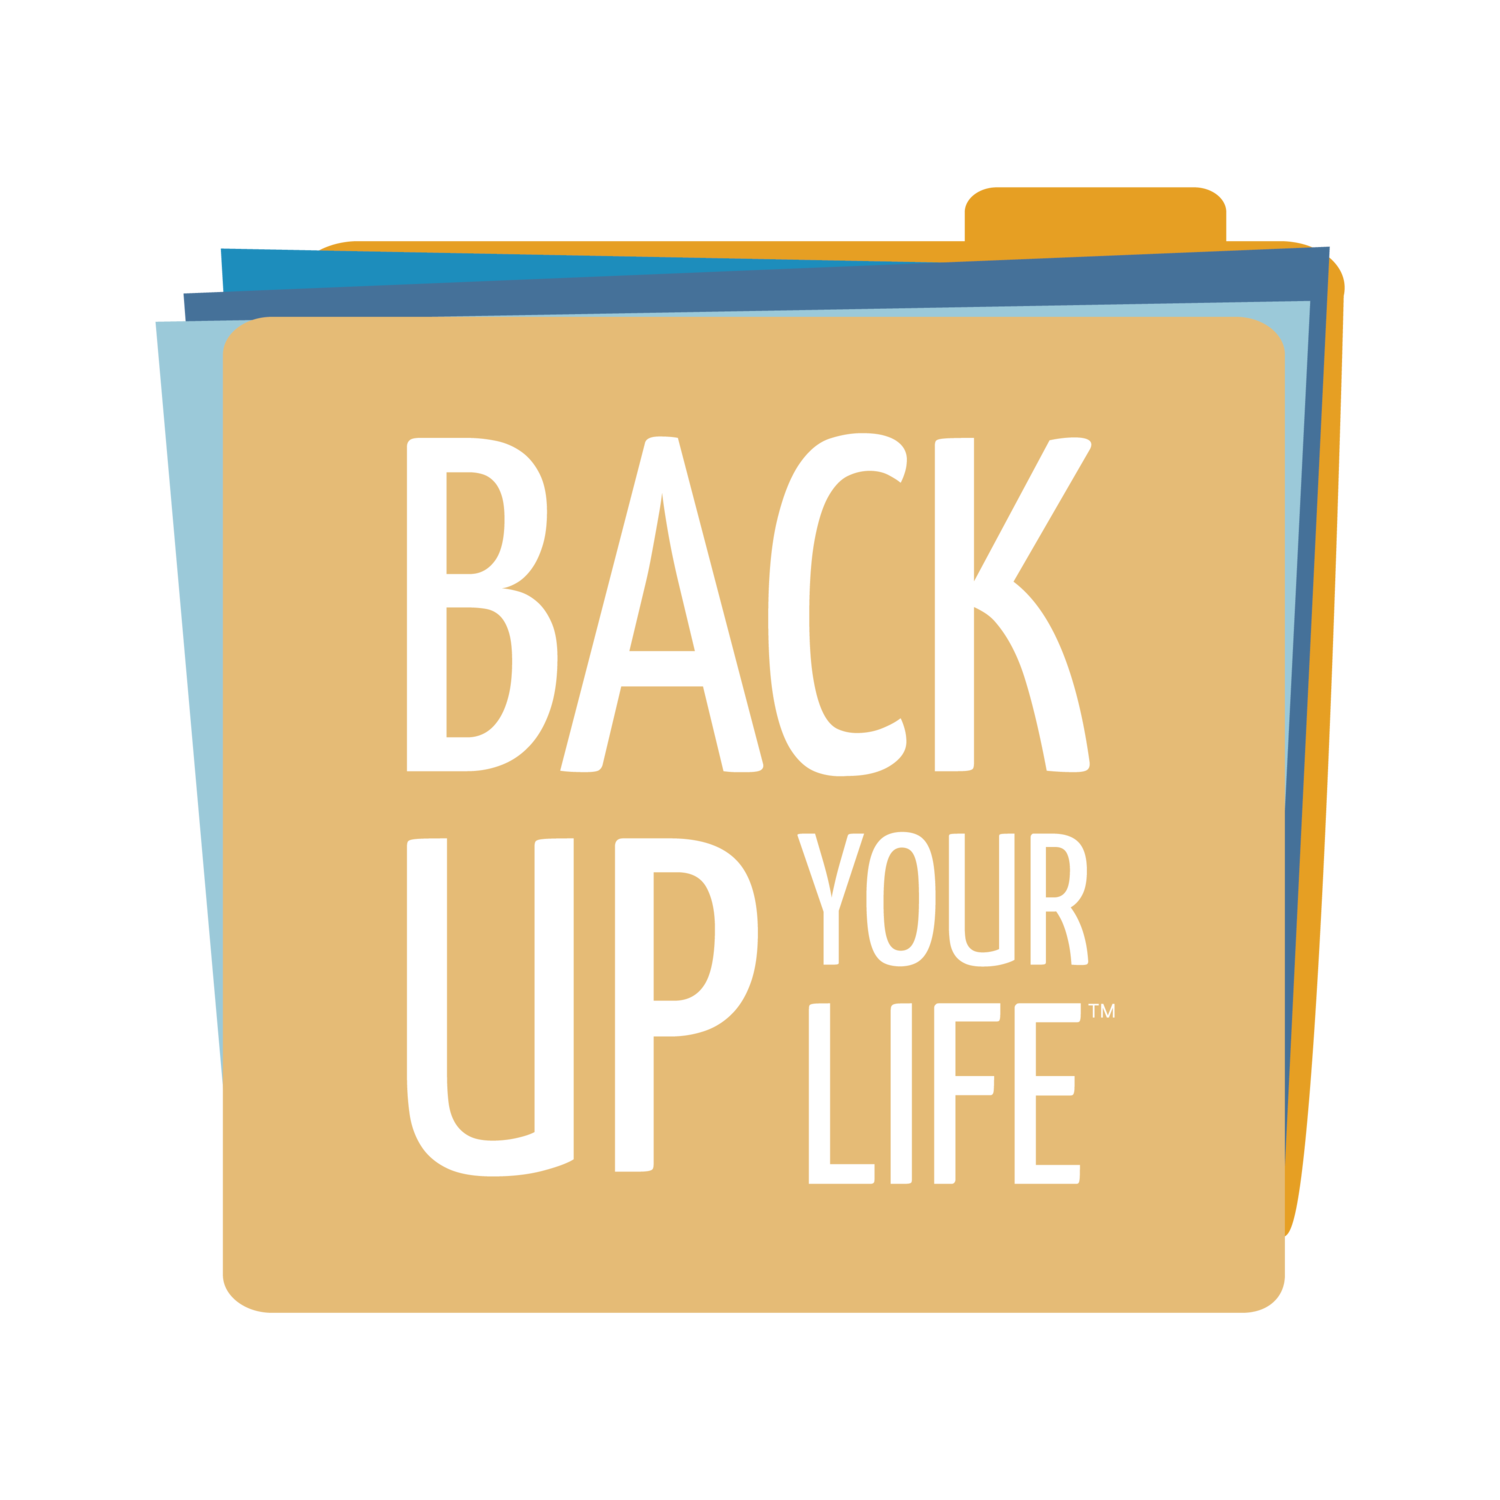 Back Up Your Life